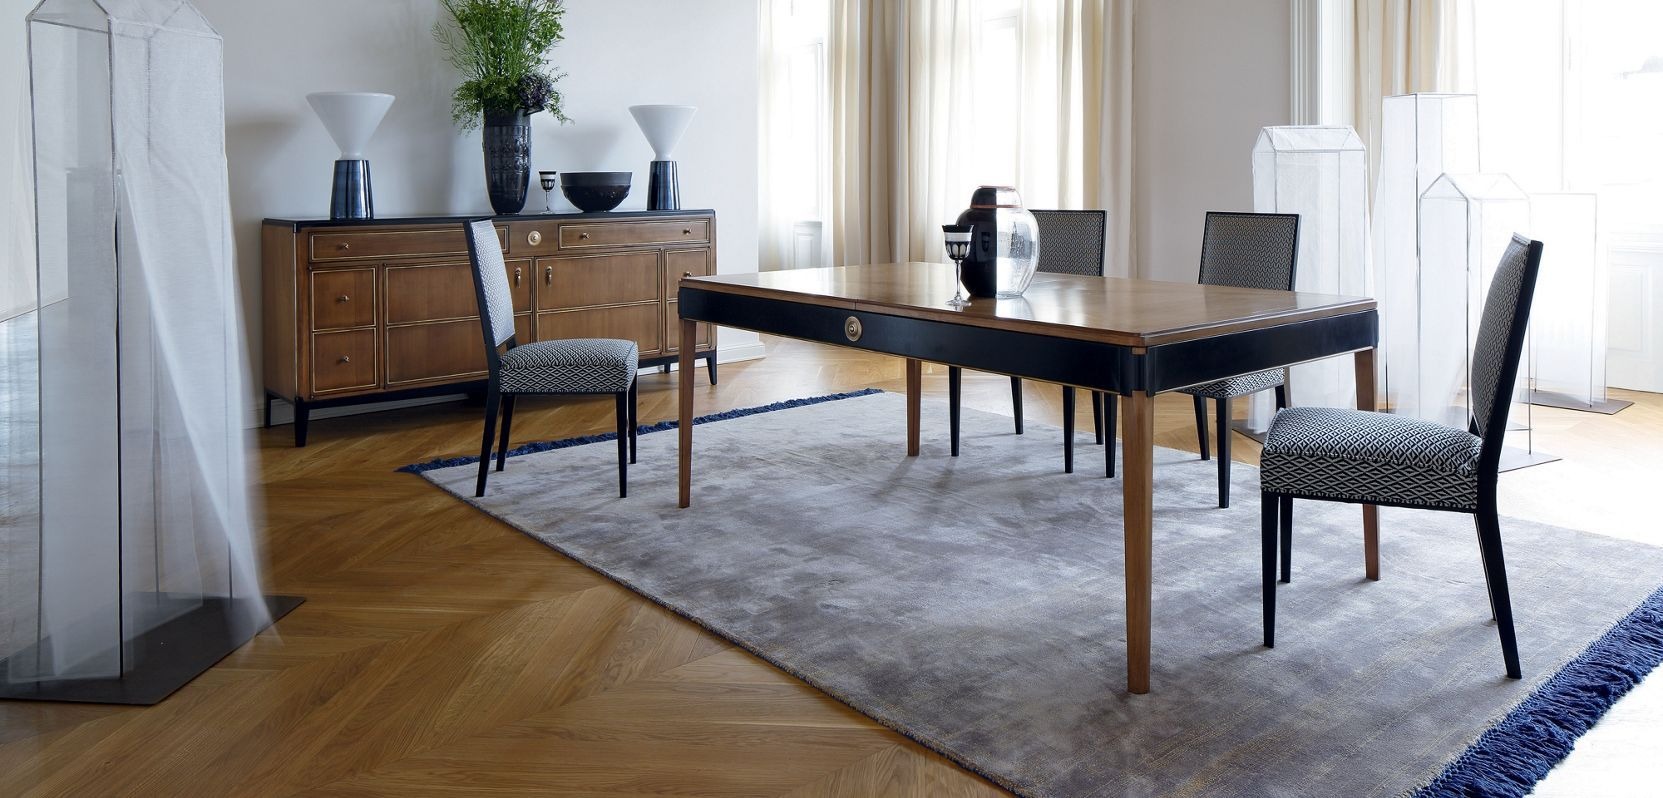 roche bobois claridge dining table dining room. Black Bedroom Furniture Sets. Home Design Ideas